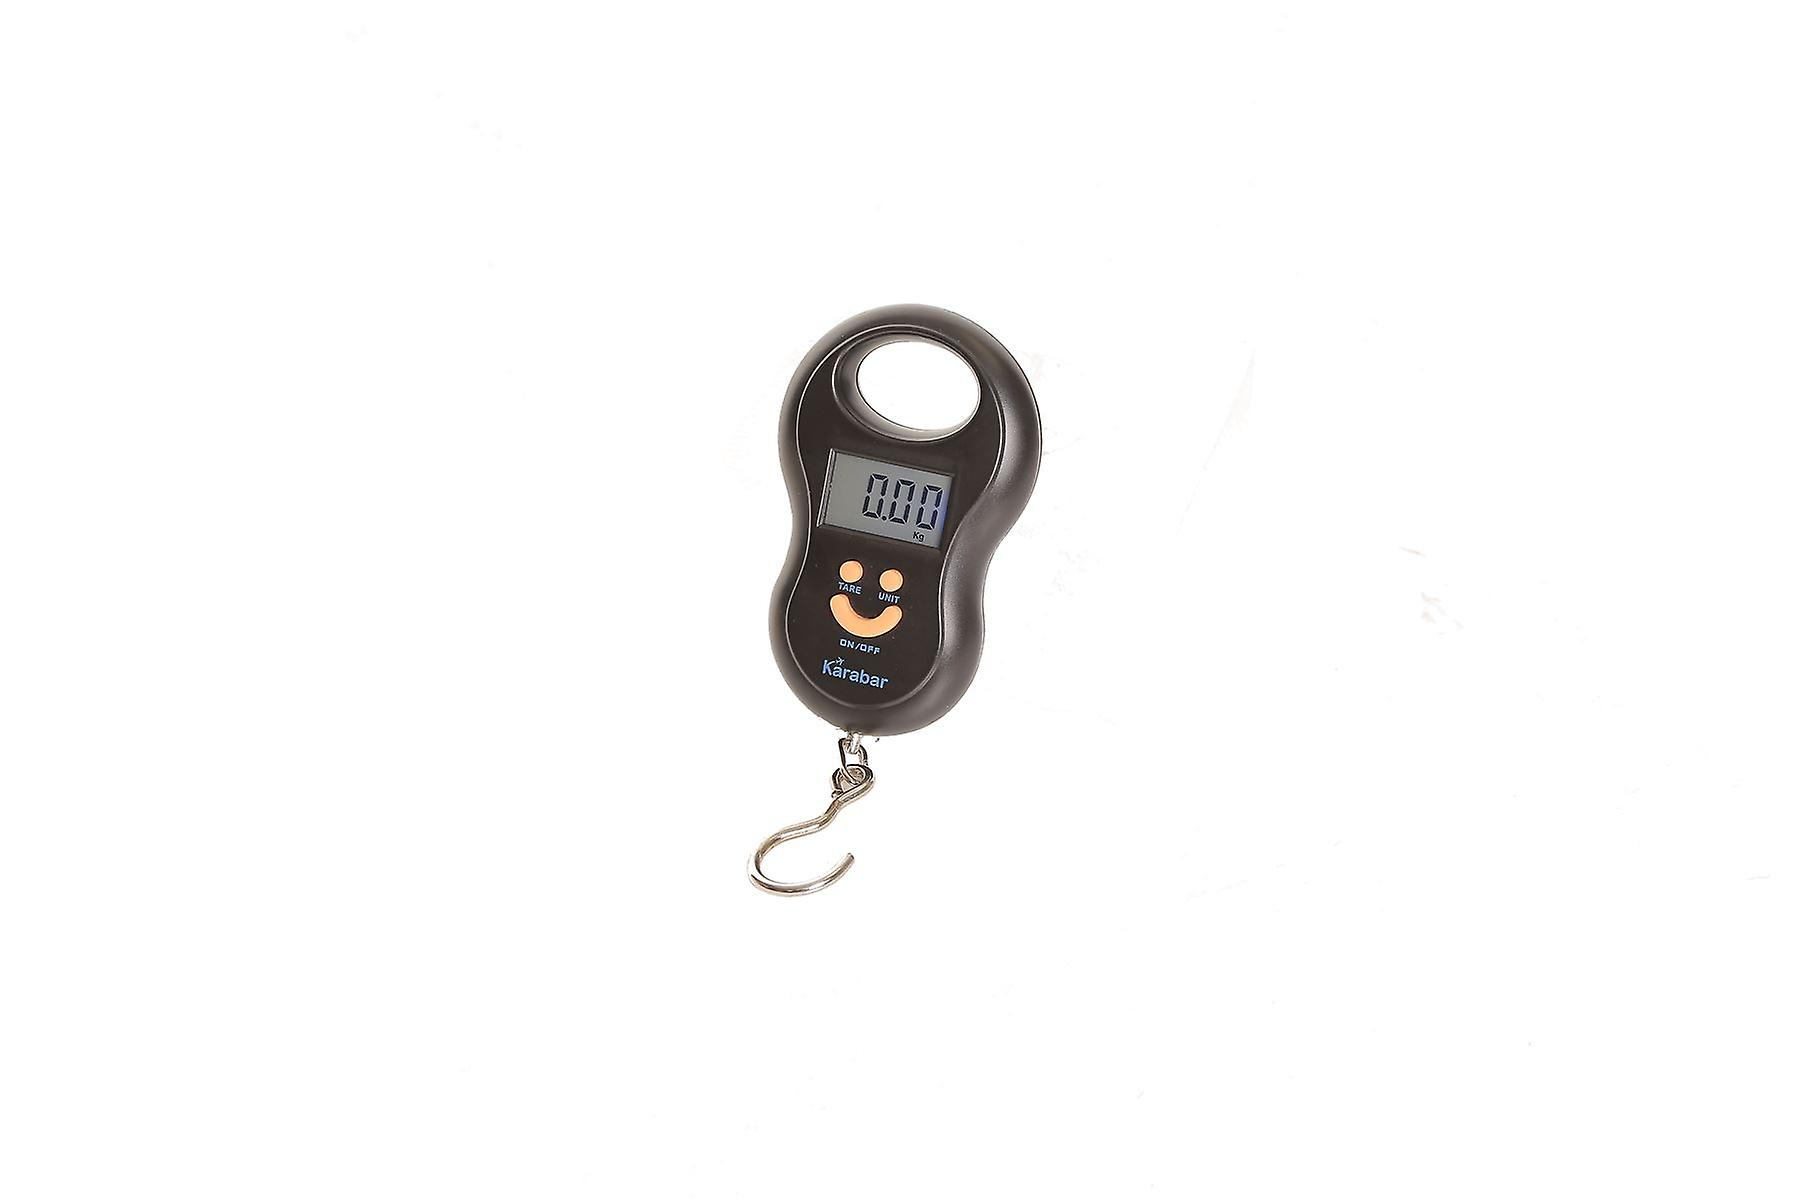 Karabar Digital Luggage Scale